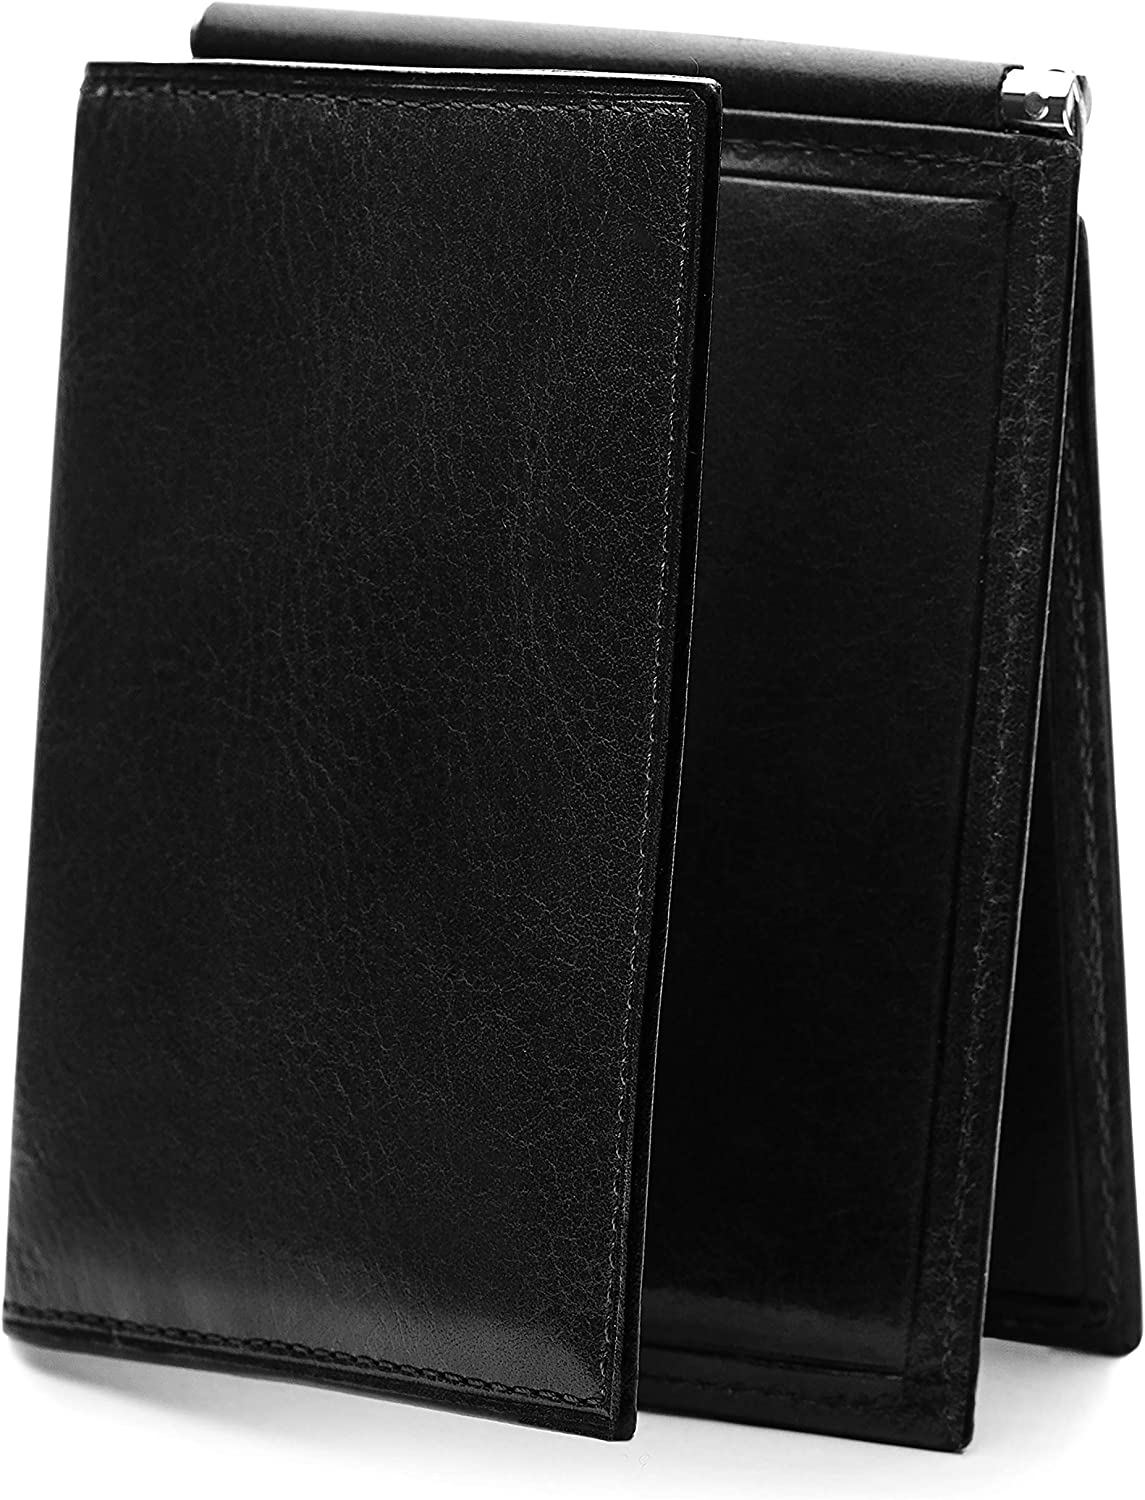 Bosca Men's Leather Money pocket Clip Direct free shipping sale of manufacturer with